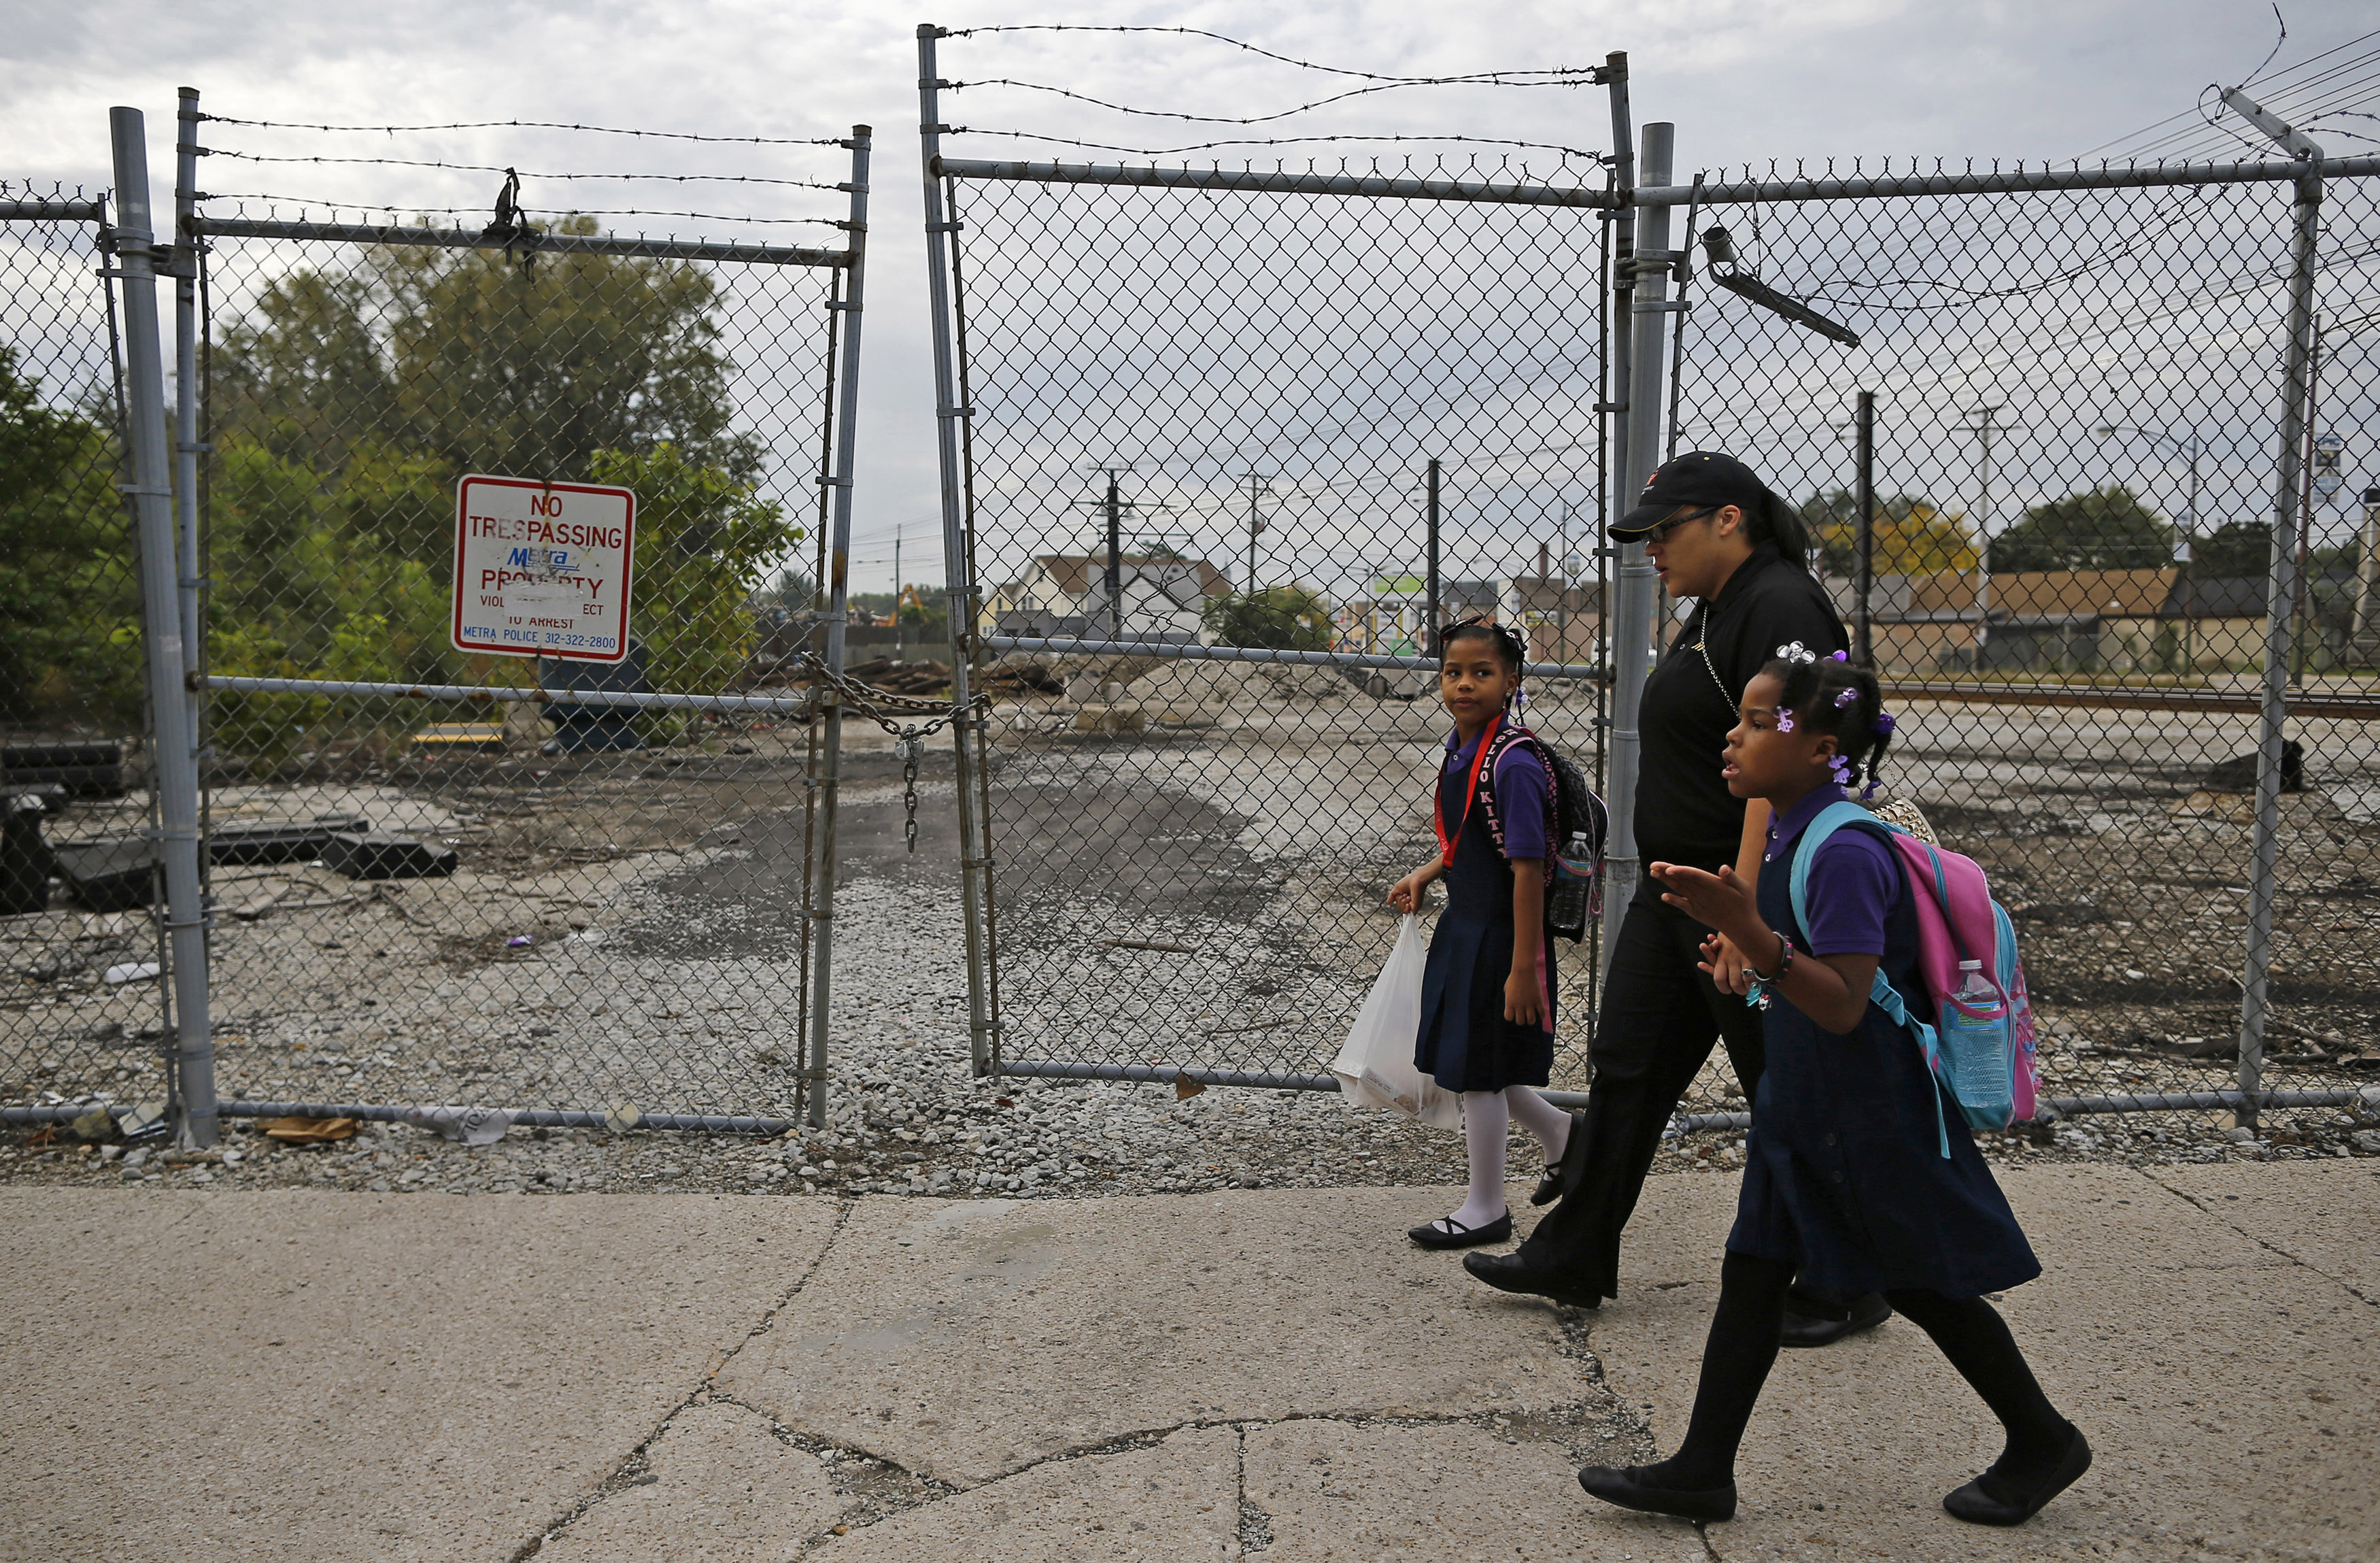 Delores Leonard (C) walks her daughters Emmarie (L) and Erin to school before heading to work at a McDonald's Restaurant in Chicago, Illinois, September 25, 2014. Leonard, a single mother raising two daughters, has been working at McDonald's for seven years and has never made more than minimum wage.  Picture taken September 25, 2014.   REUTERS/Jim Young (UNITED STATES - Tags: BUSINESS EMPLOYMENT) - GM1EAAH1LMV01